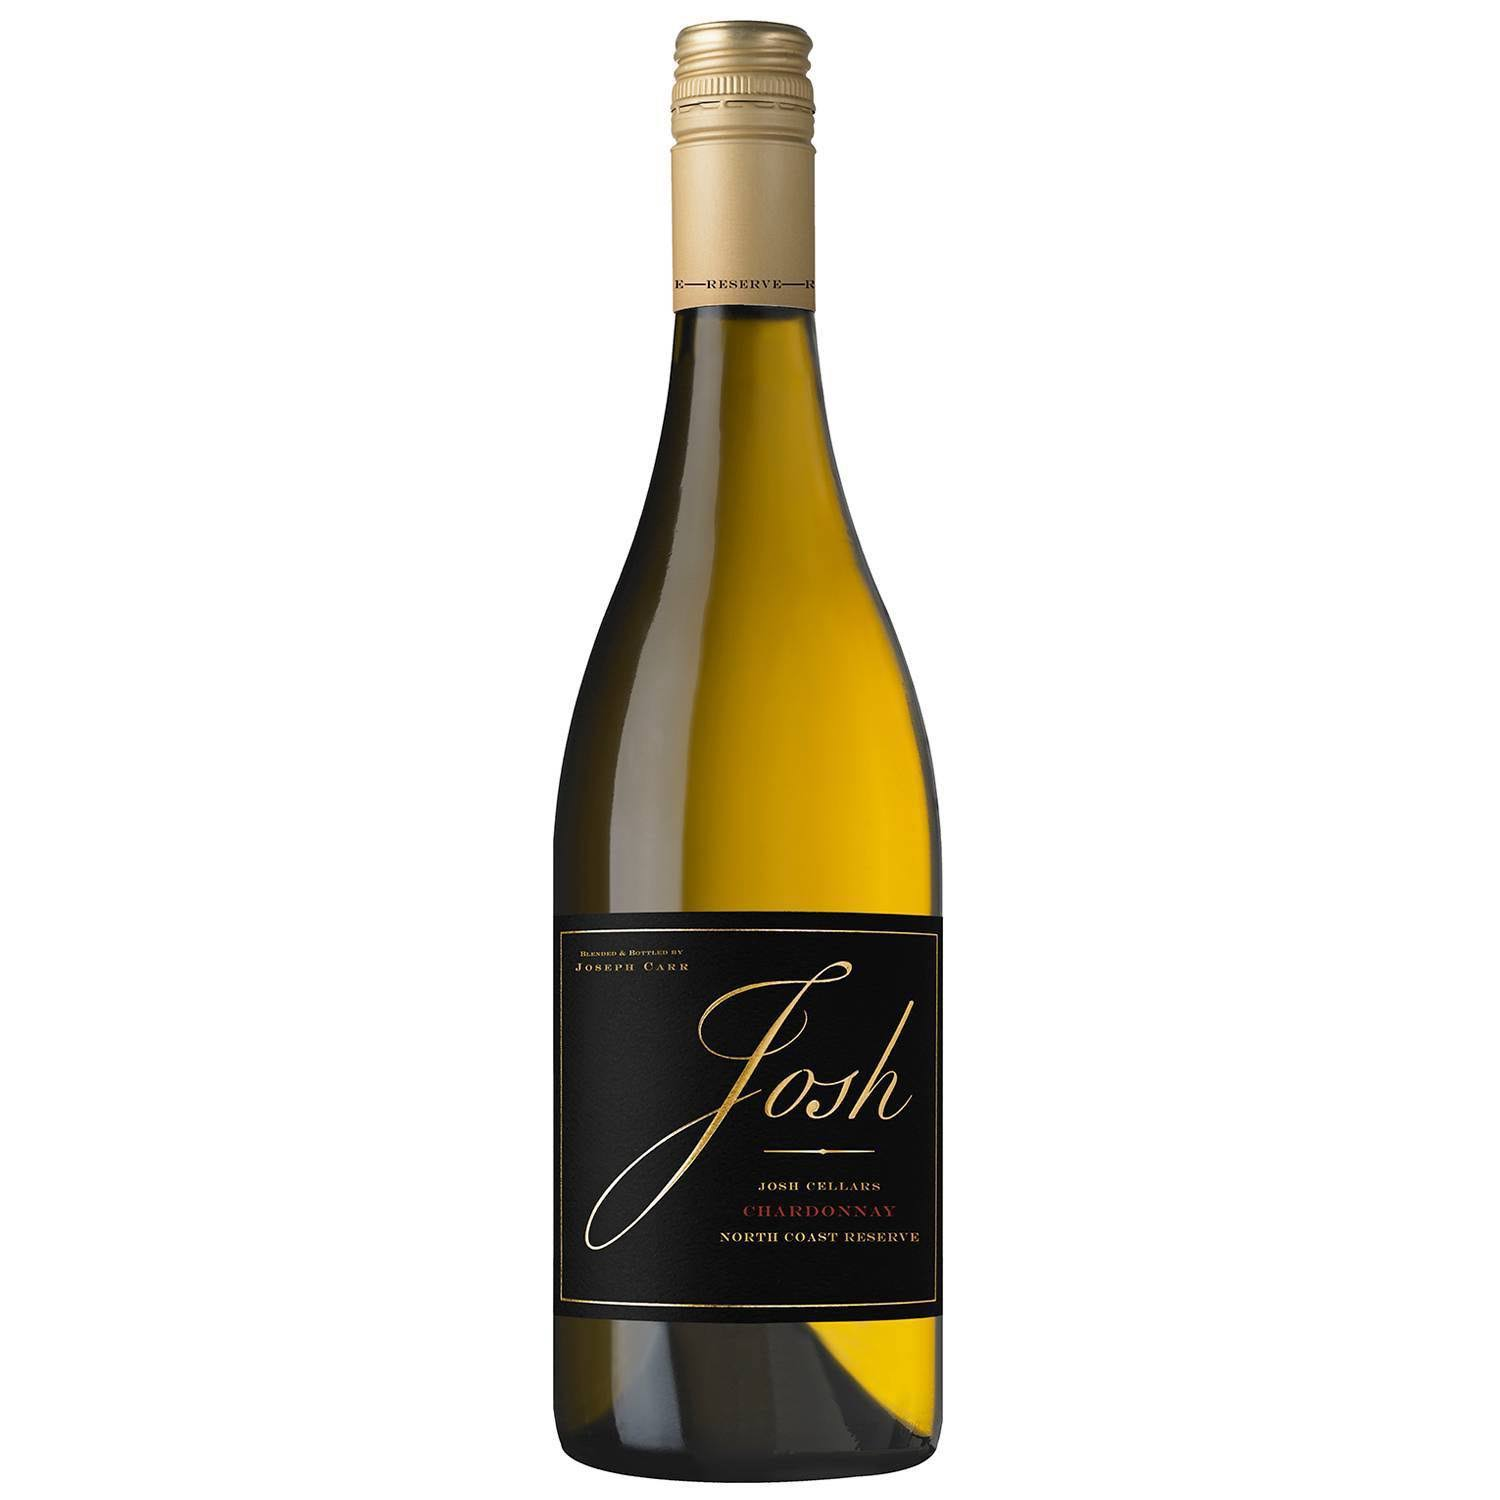 Josh Chardonnay, North Coast Reserve, Vintage 2017 - 750 ml